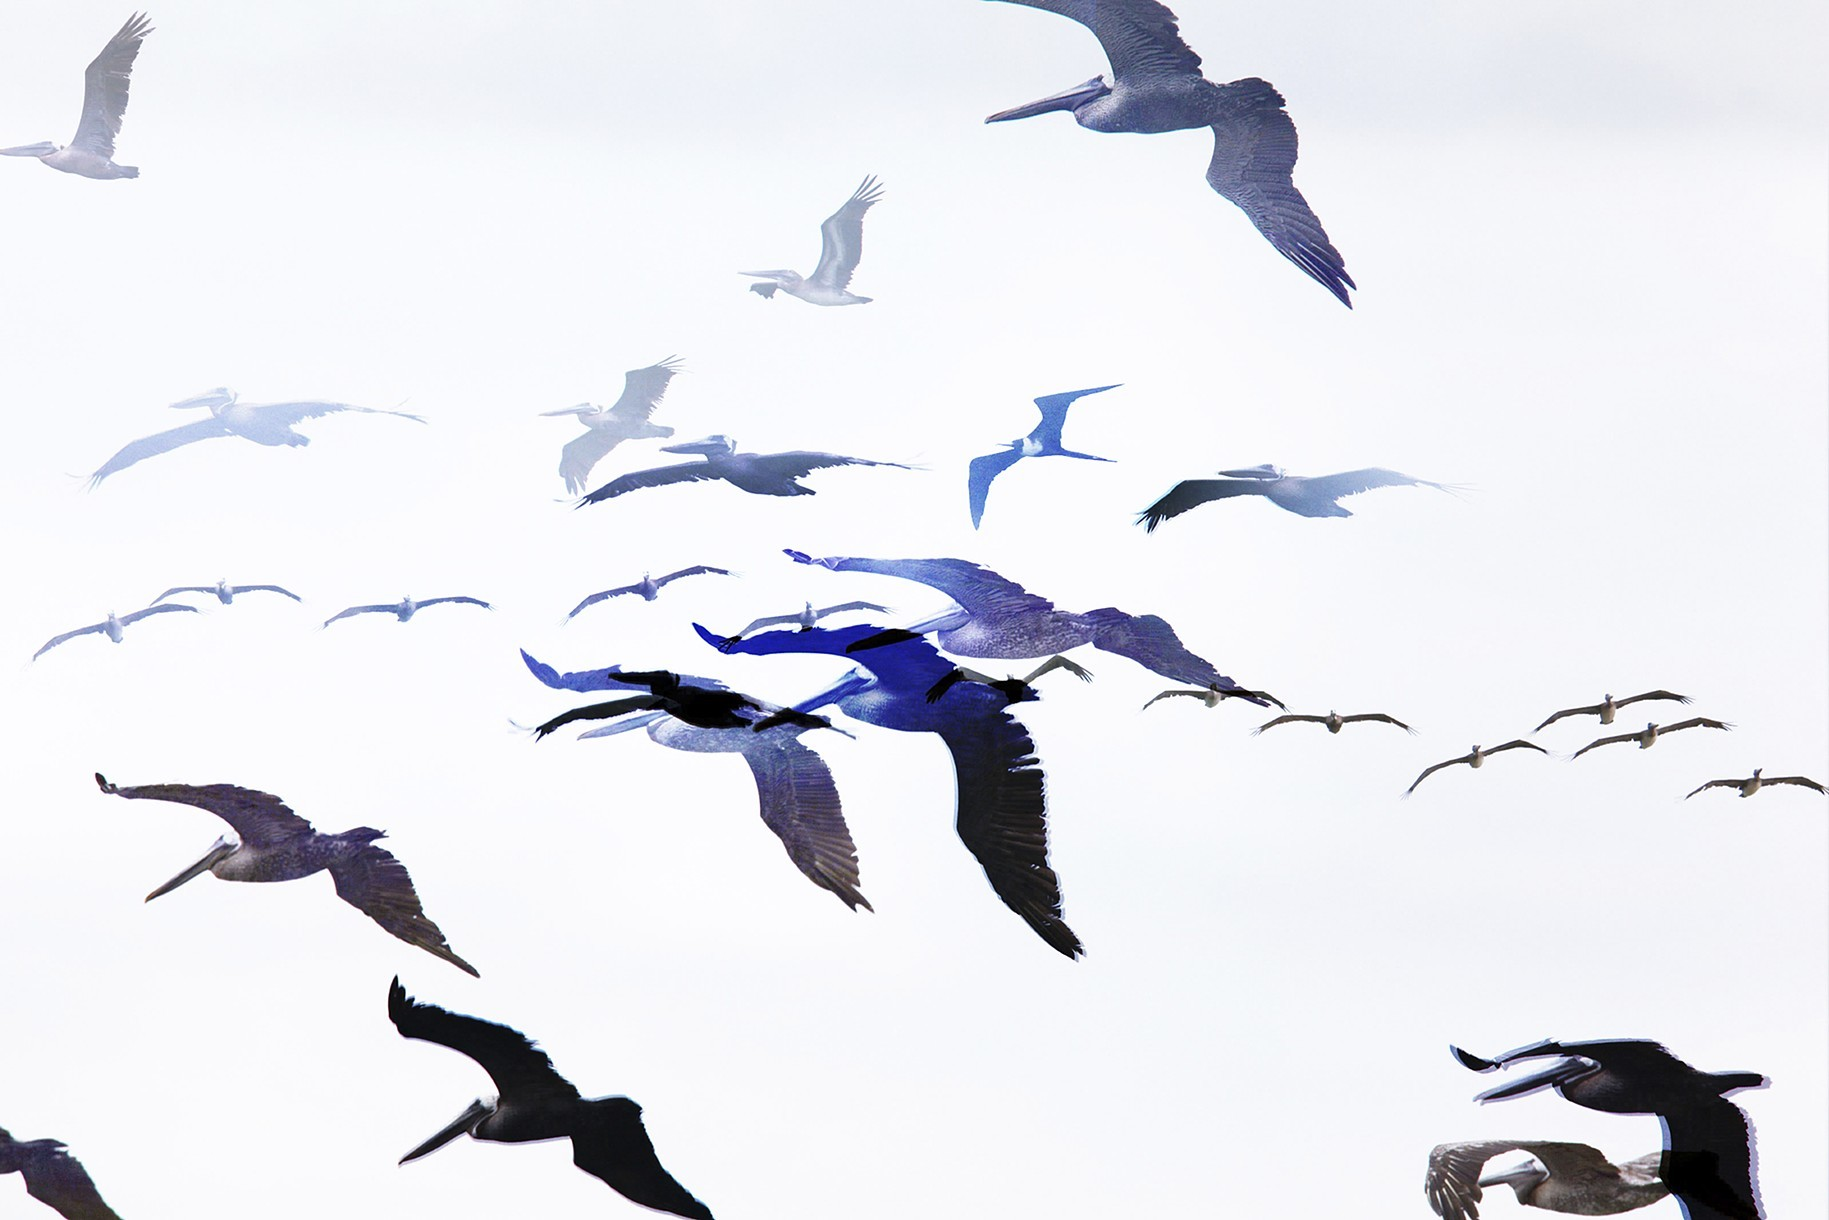 One Hour of Birds (Jenny Kendler - Brown Pelicans and a Magnificent Frigatebird flying along the Pacific, Nosara, Costa Rica) Performative Photograph, July 2015